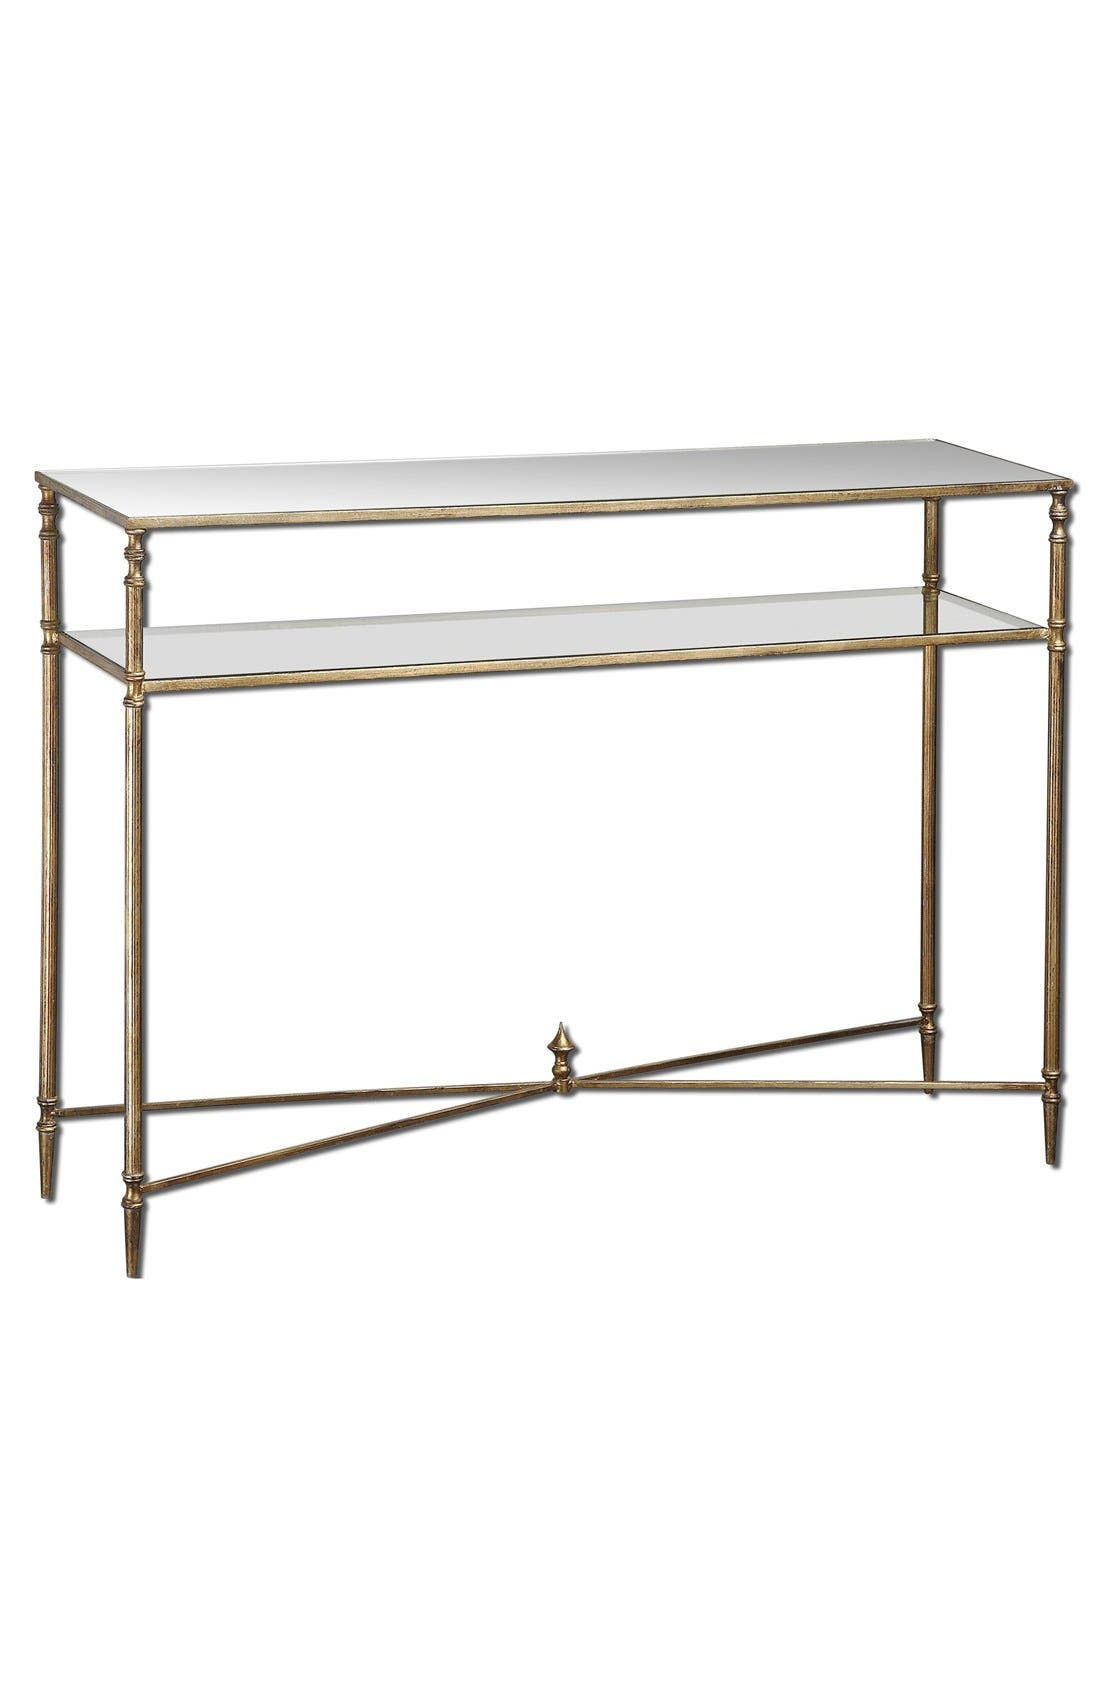 U0027Henzleru0027 Mirrored Console Table, ...